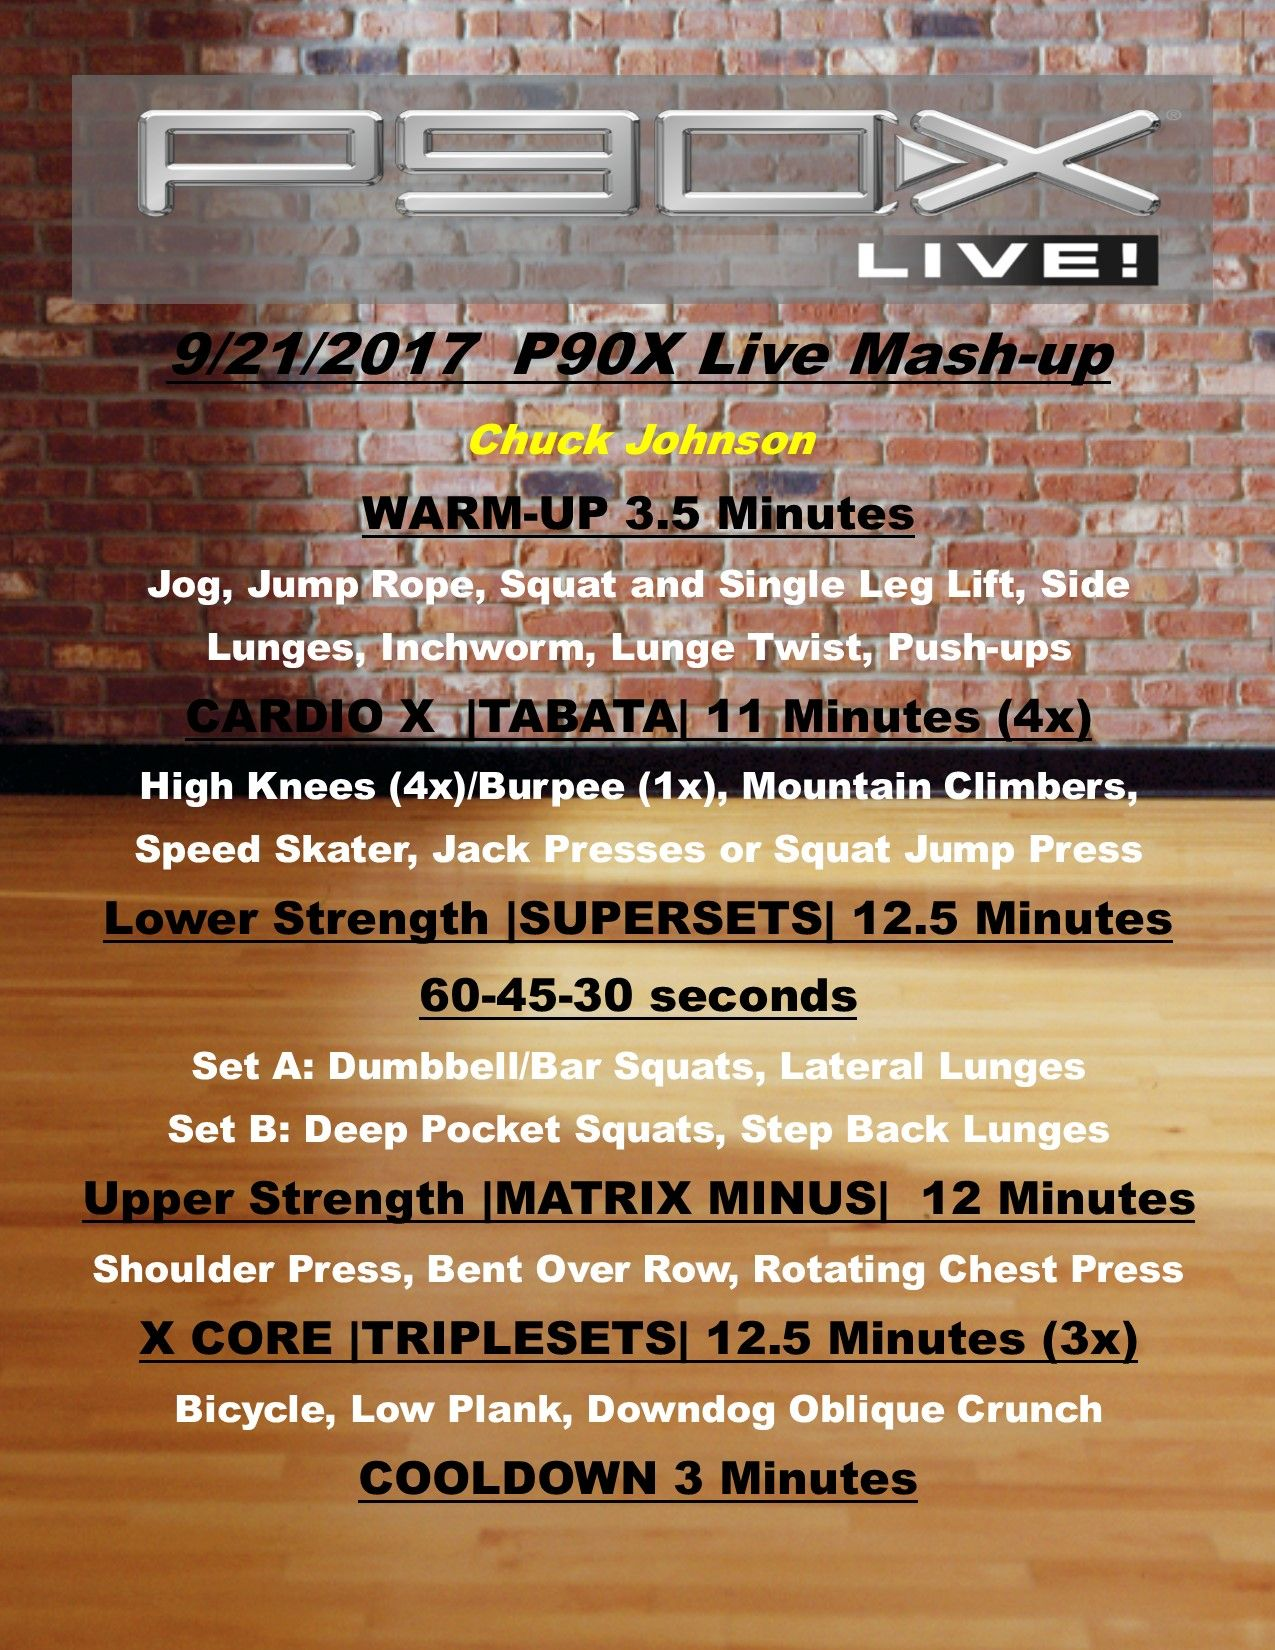 P90X Live workout Mashup  Cardio Tabata, lower and Upper